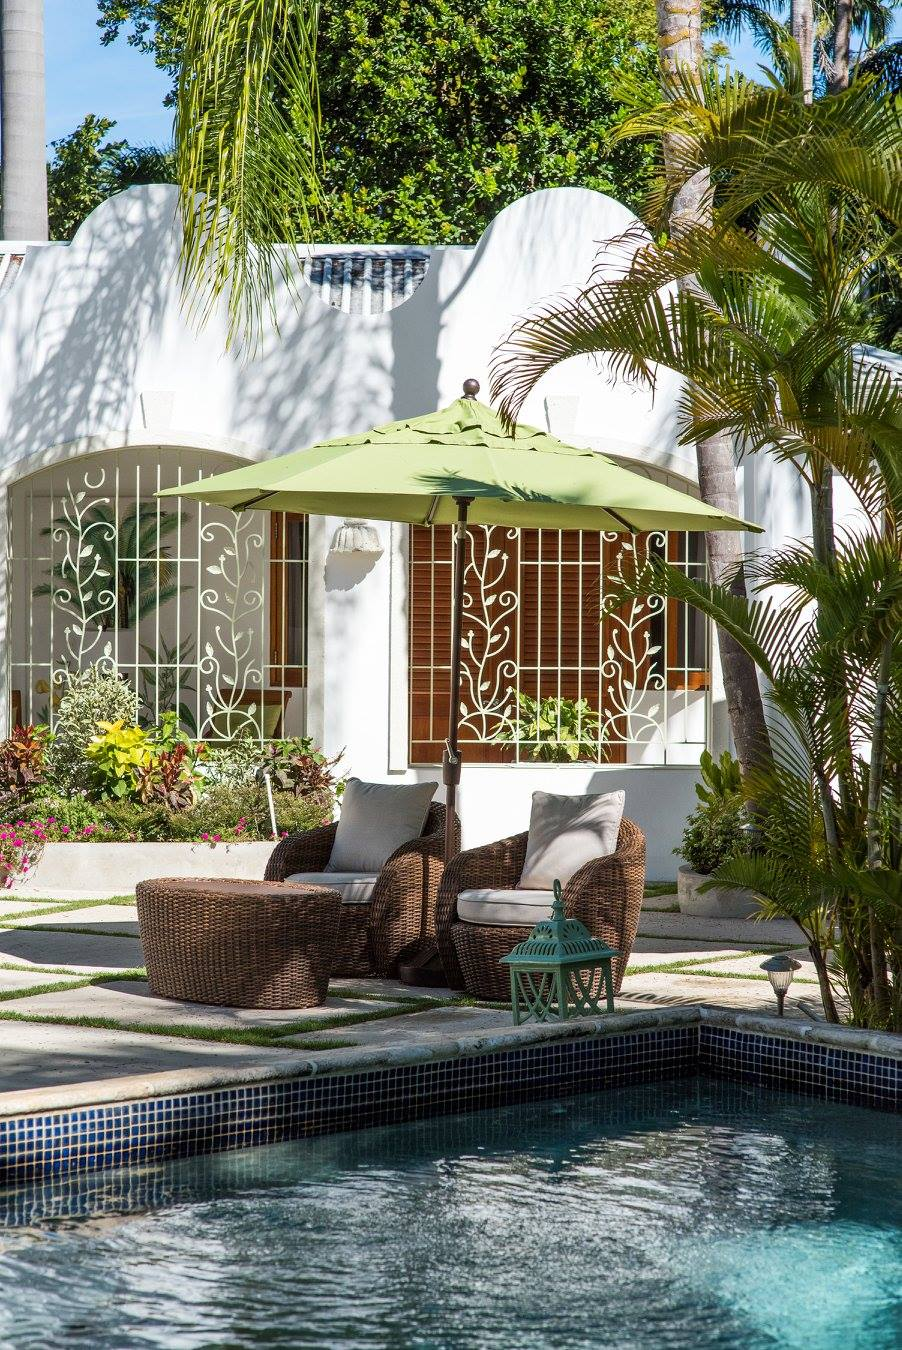 sun loungers by the pool of a villa to rent in Barbados